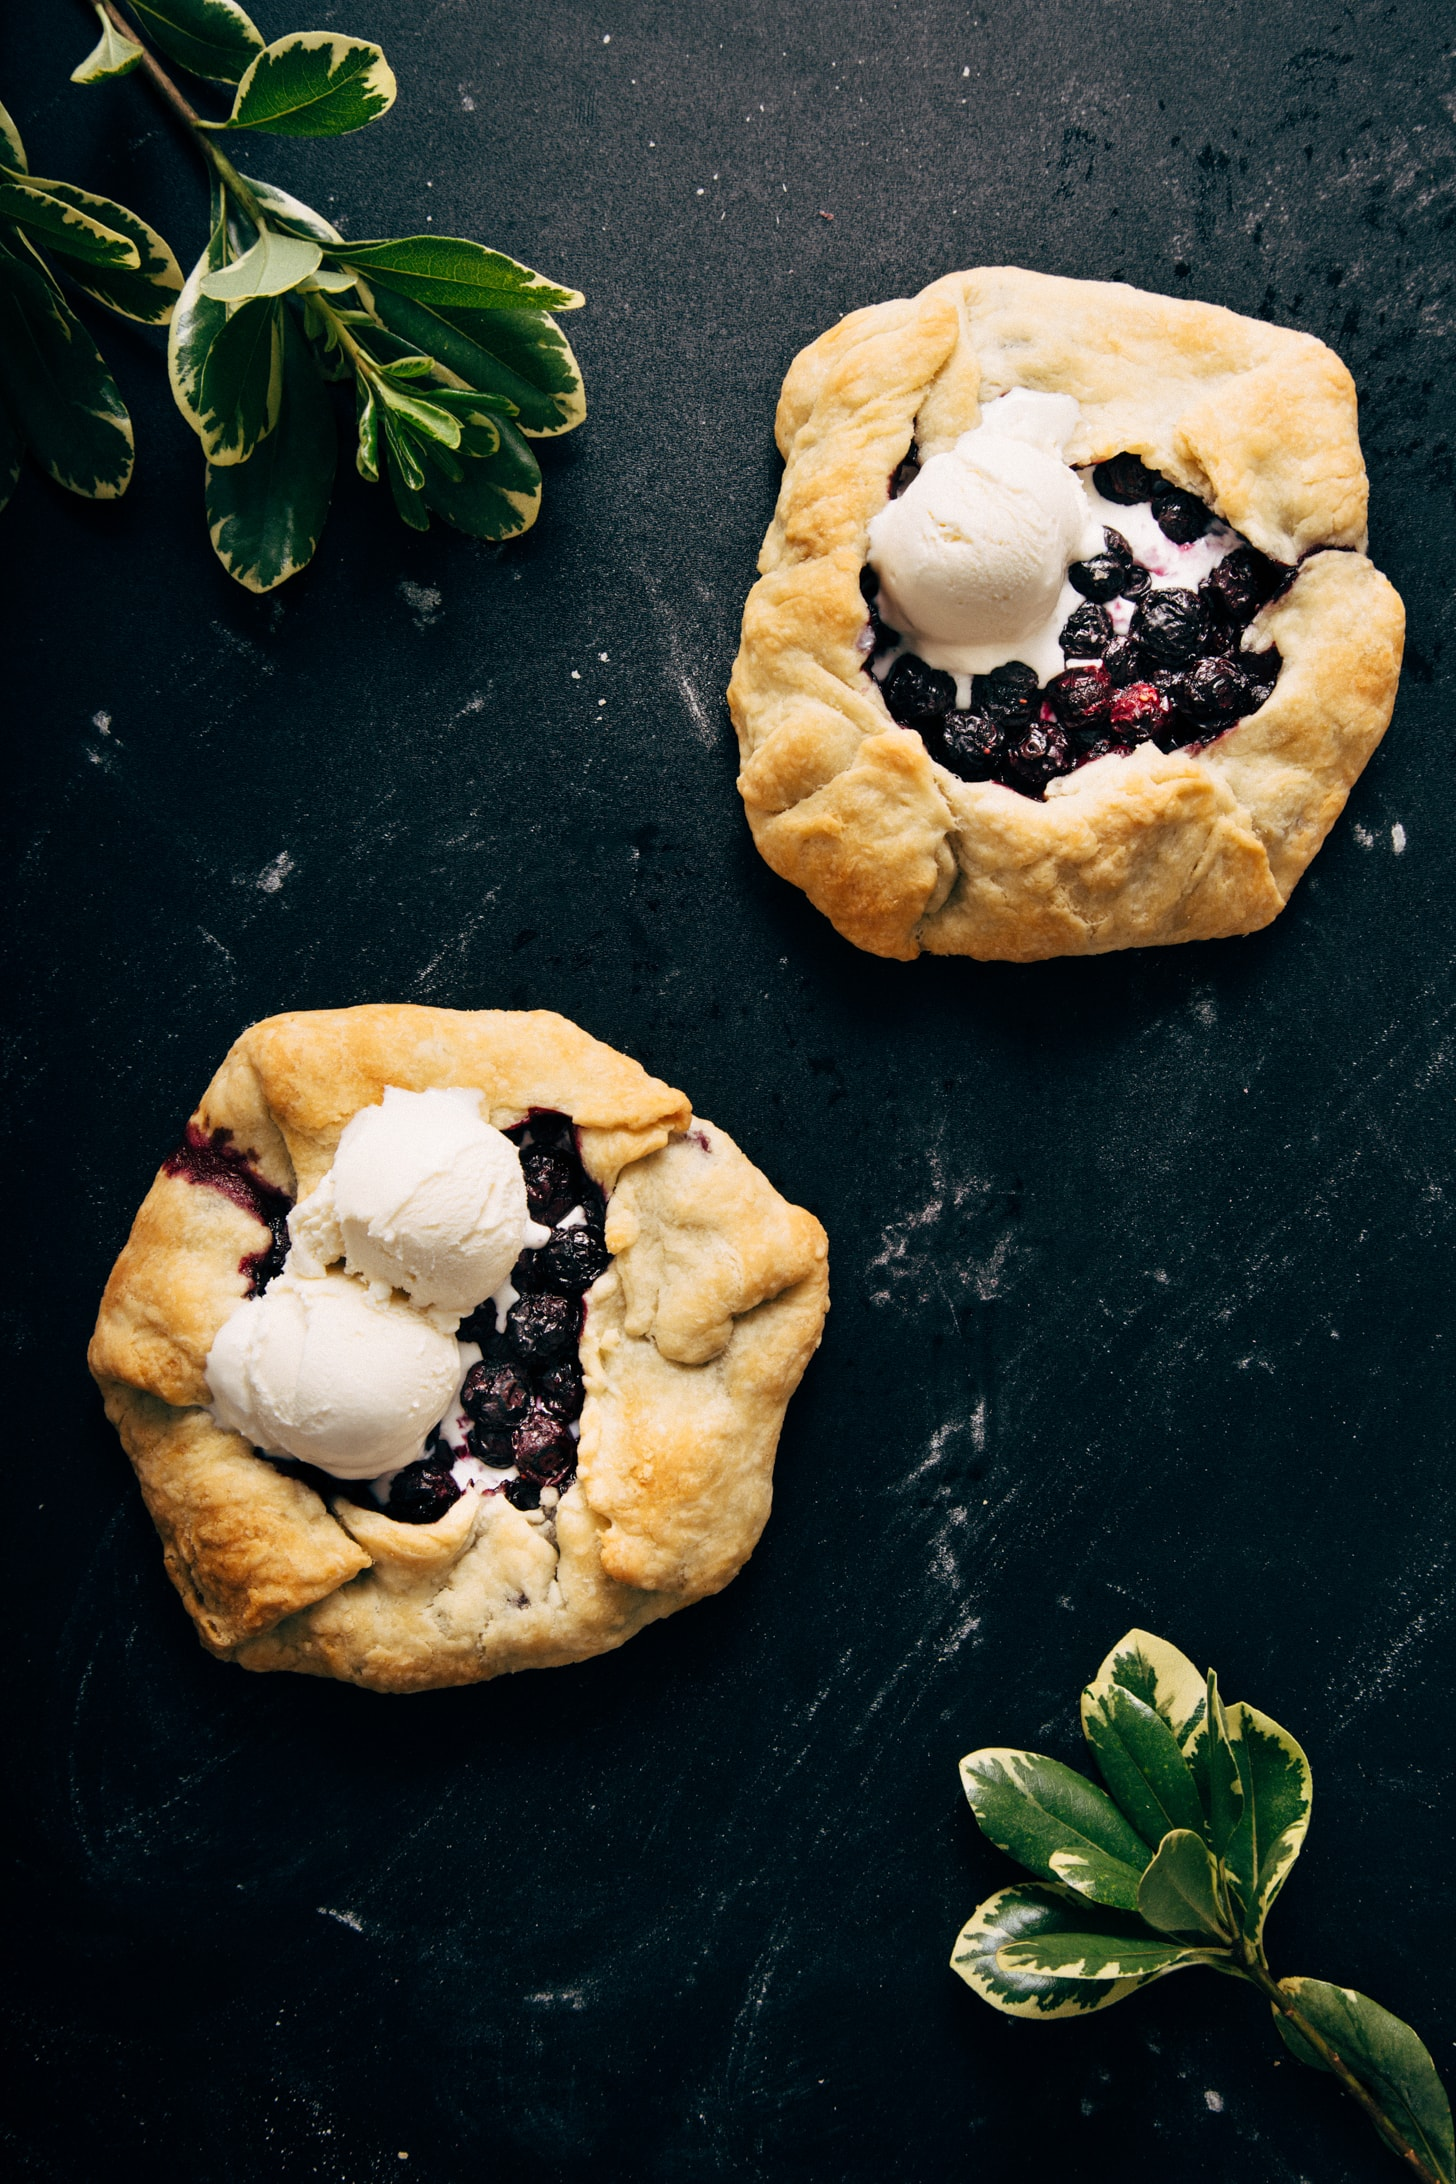 Two vegan Mini Blueberry Galettes topped with scoops of ice cream